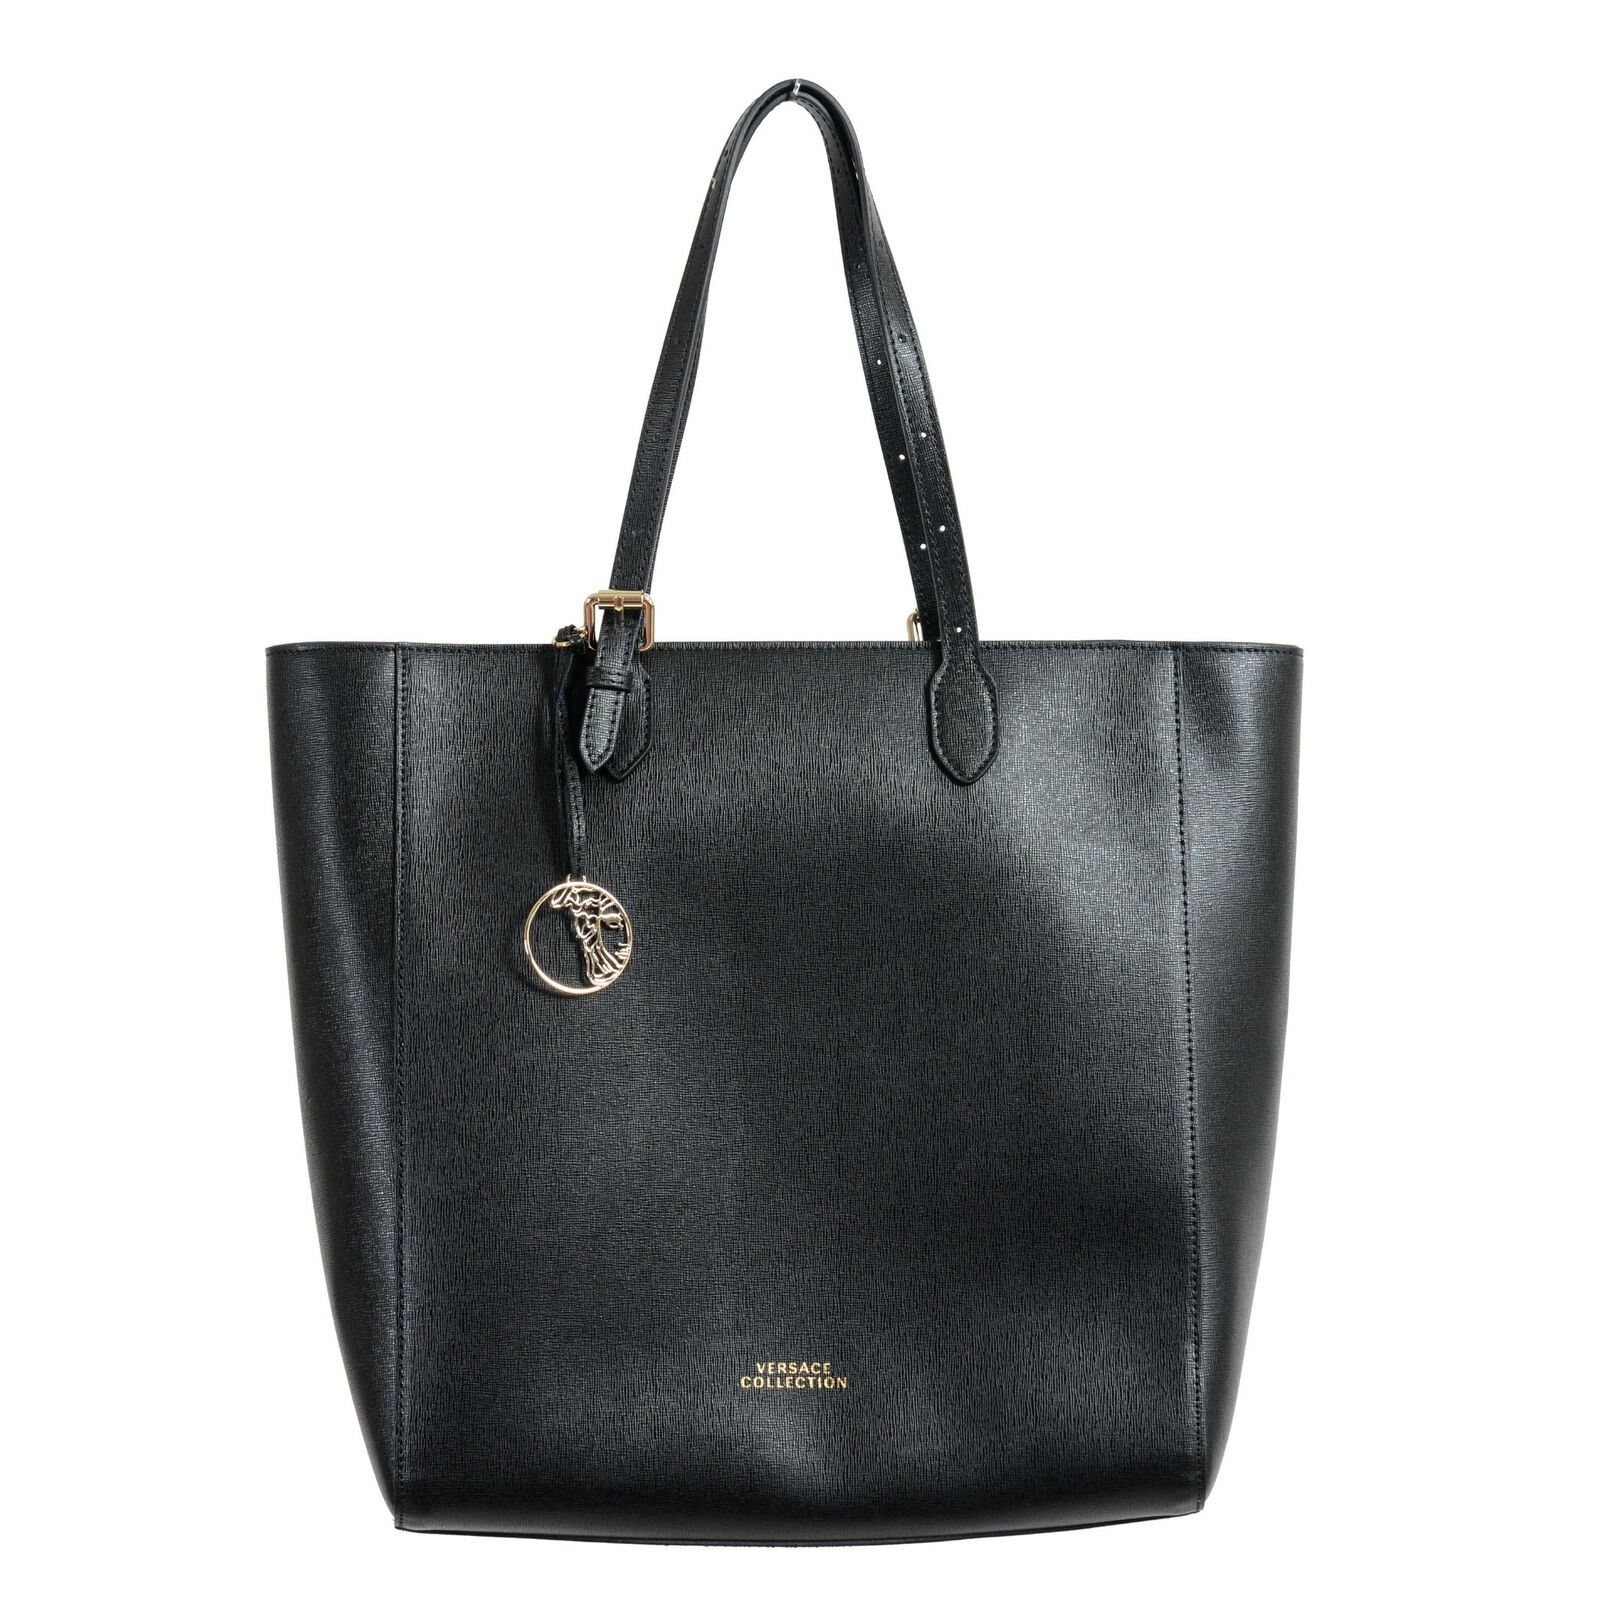 cc2e0a49d762 Details about Versace Collection Saffiano Black Leather Tote Shoulder Bag